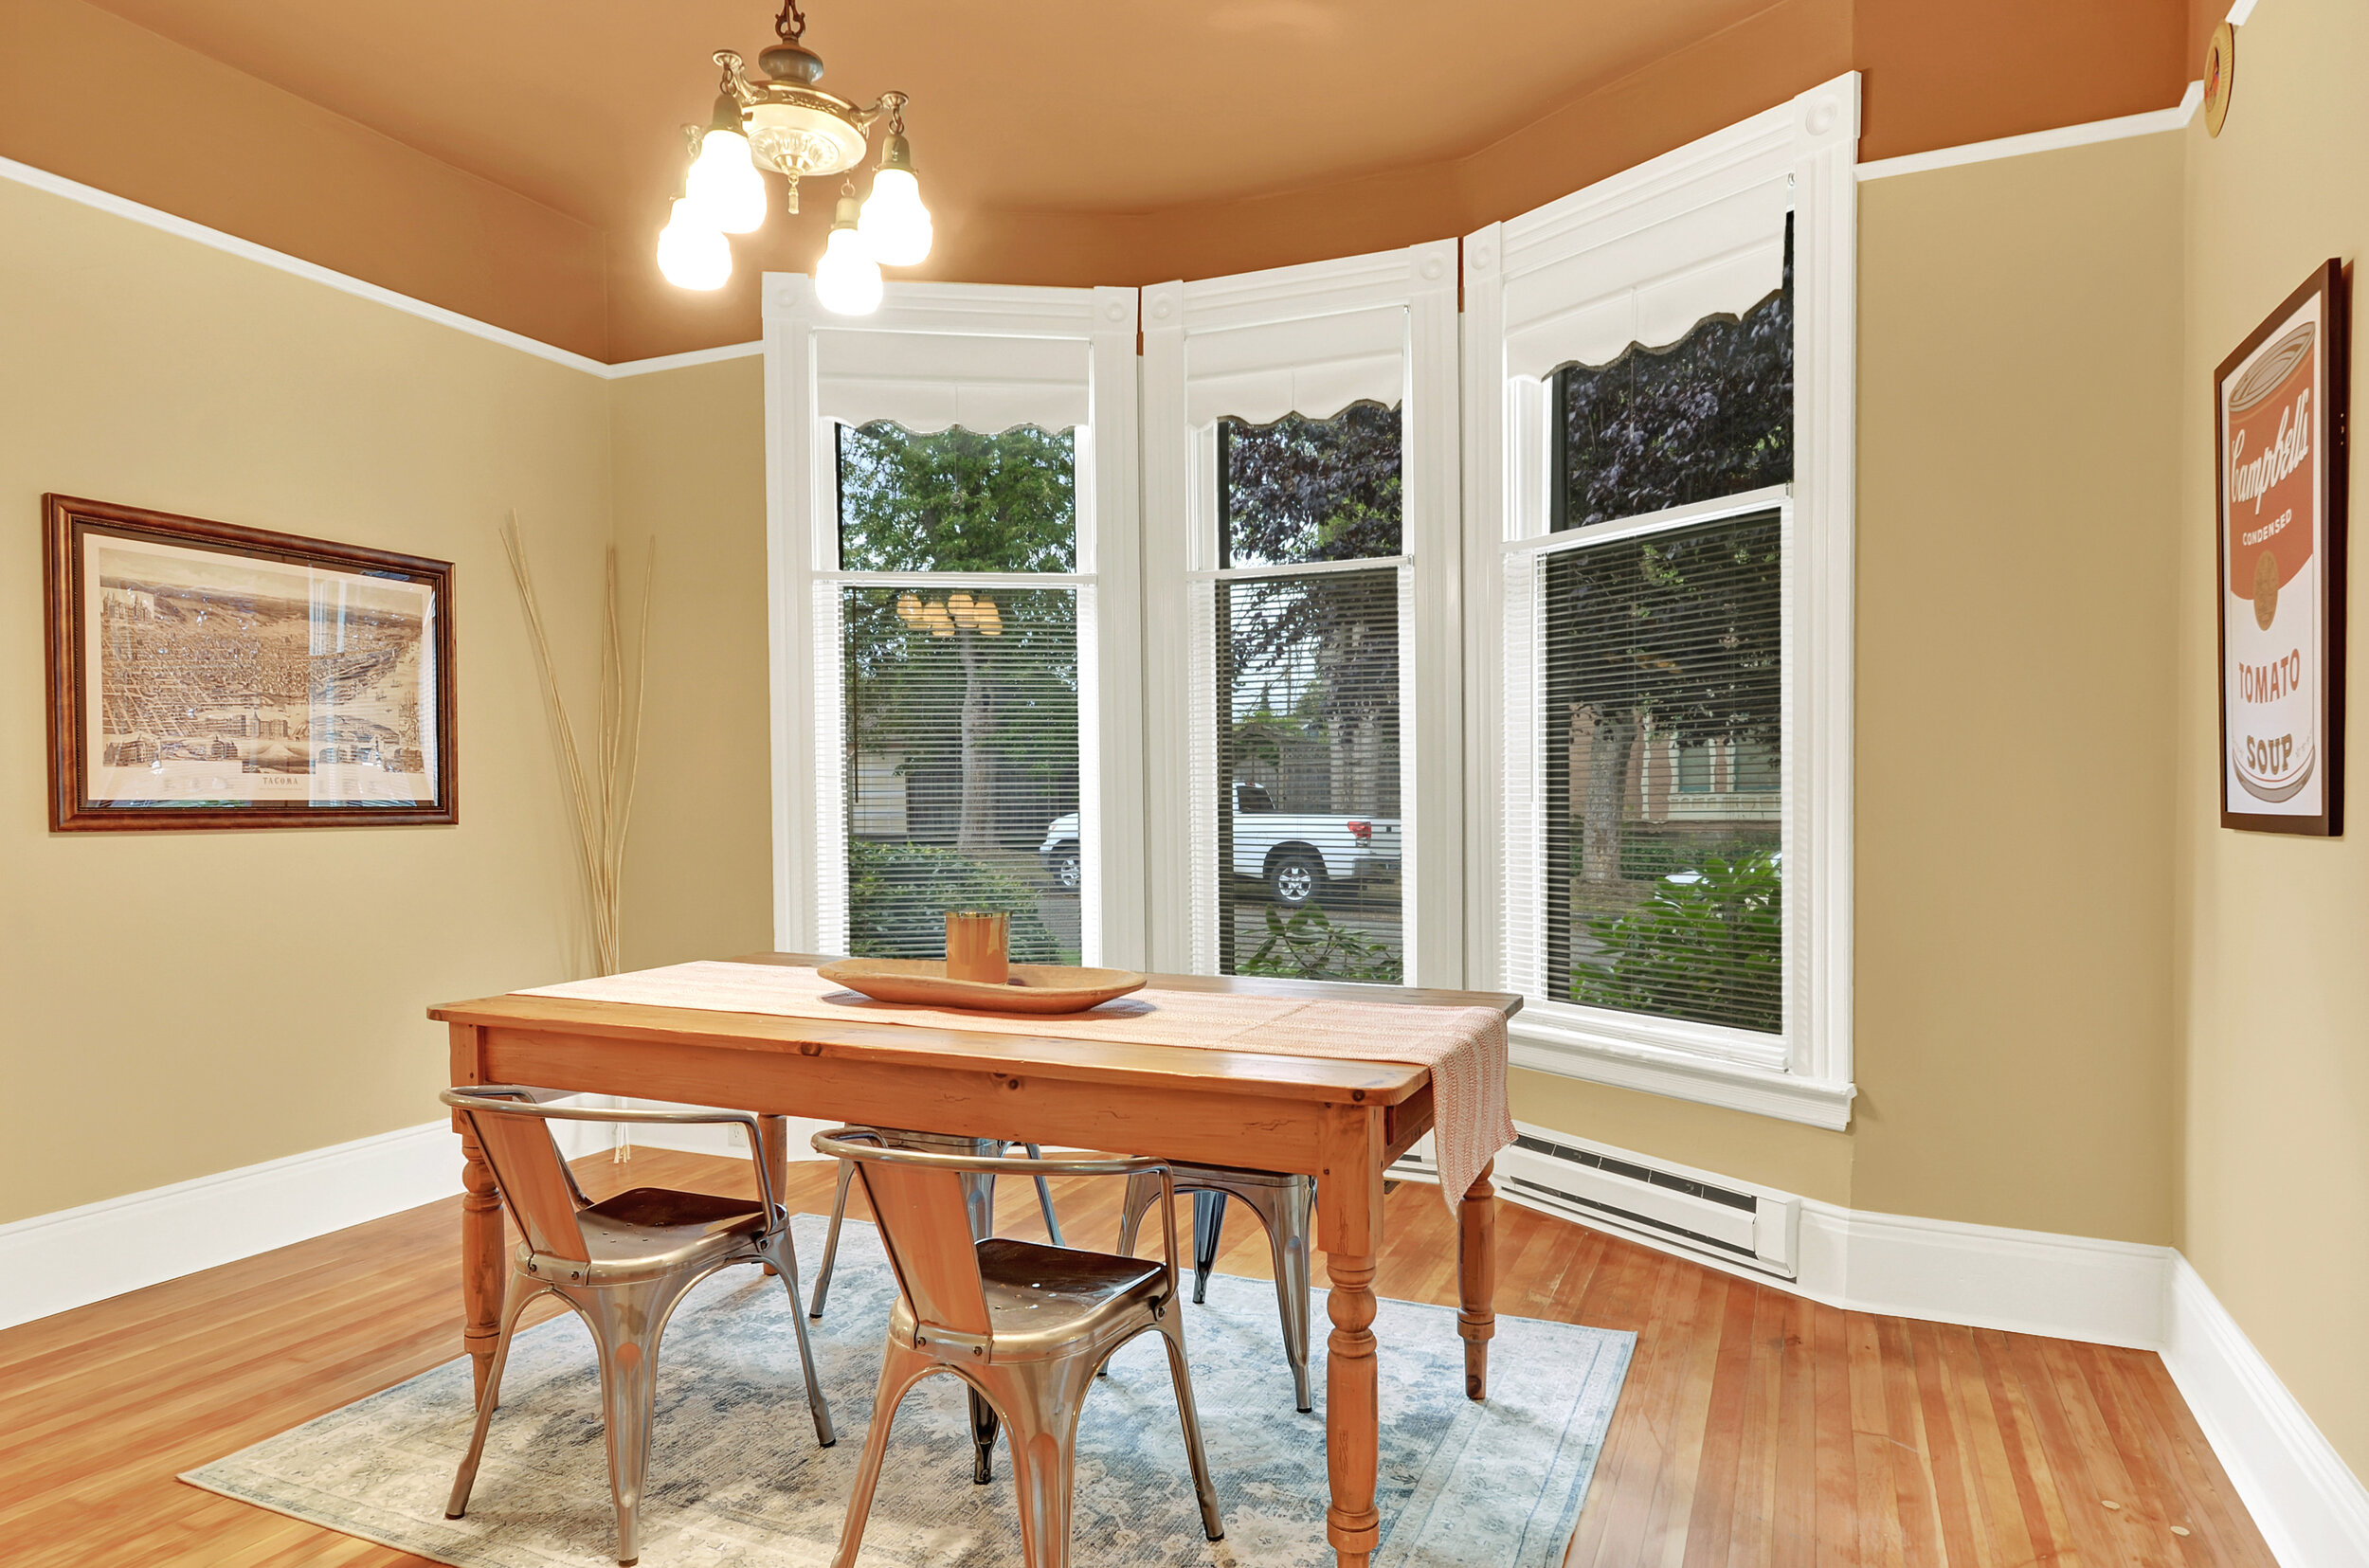 North facing bay windows in the dining room bring in afternoon light.